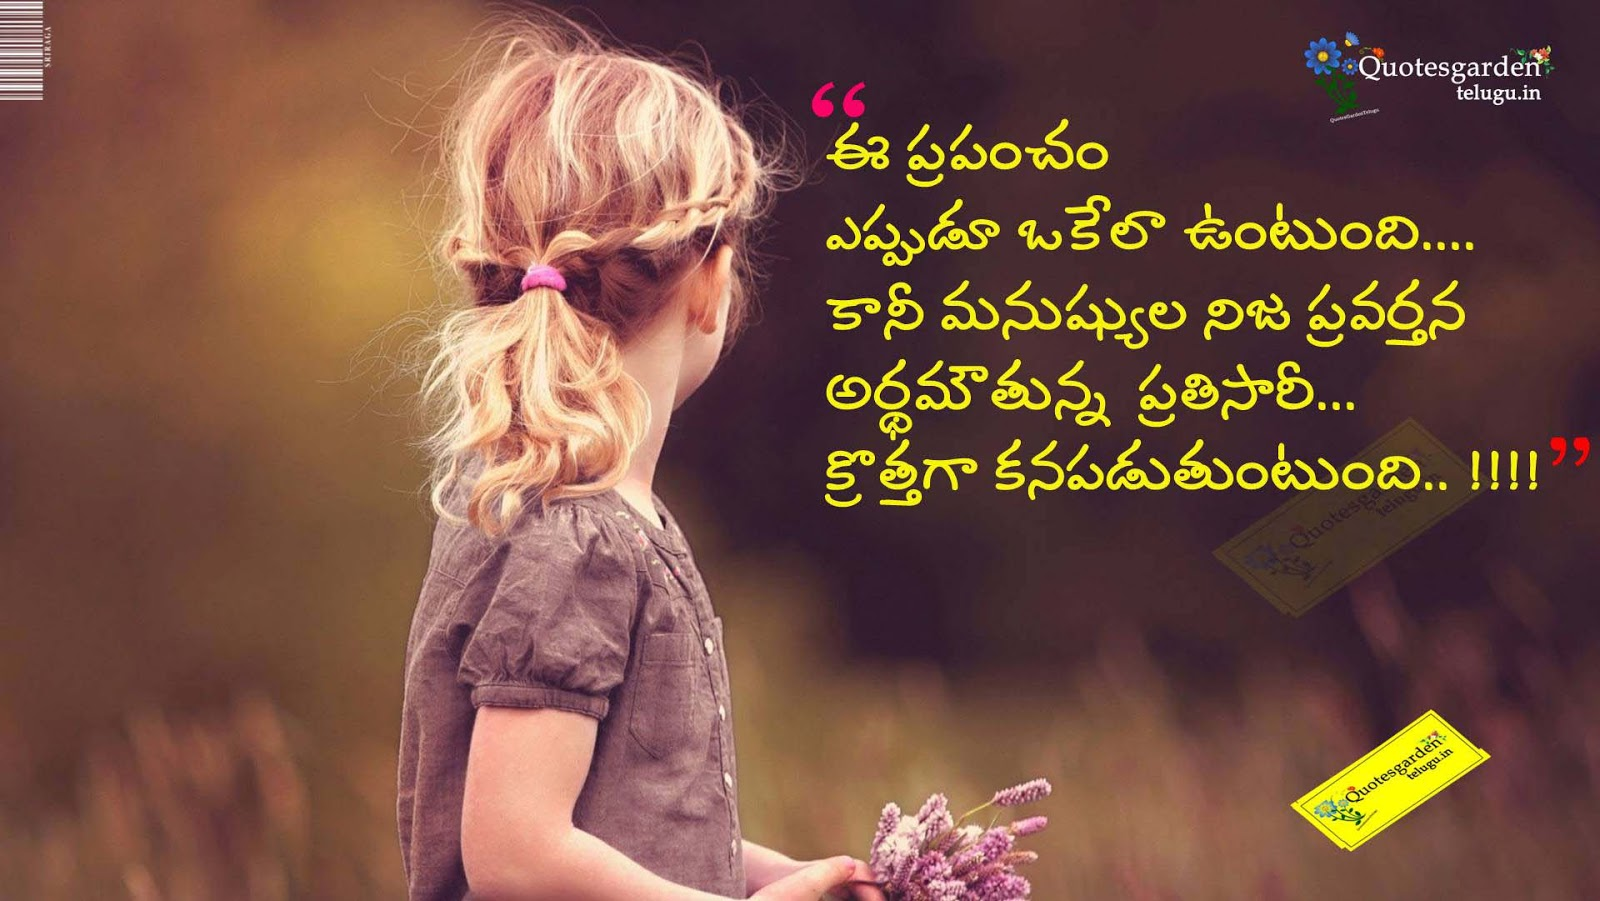 Sad Quotes About Love In Telugu : Sad Love broken heart telugu quotes with hd wallpapers 707 QUOTES ...